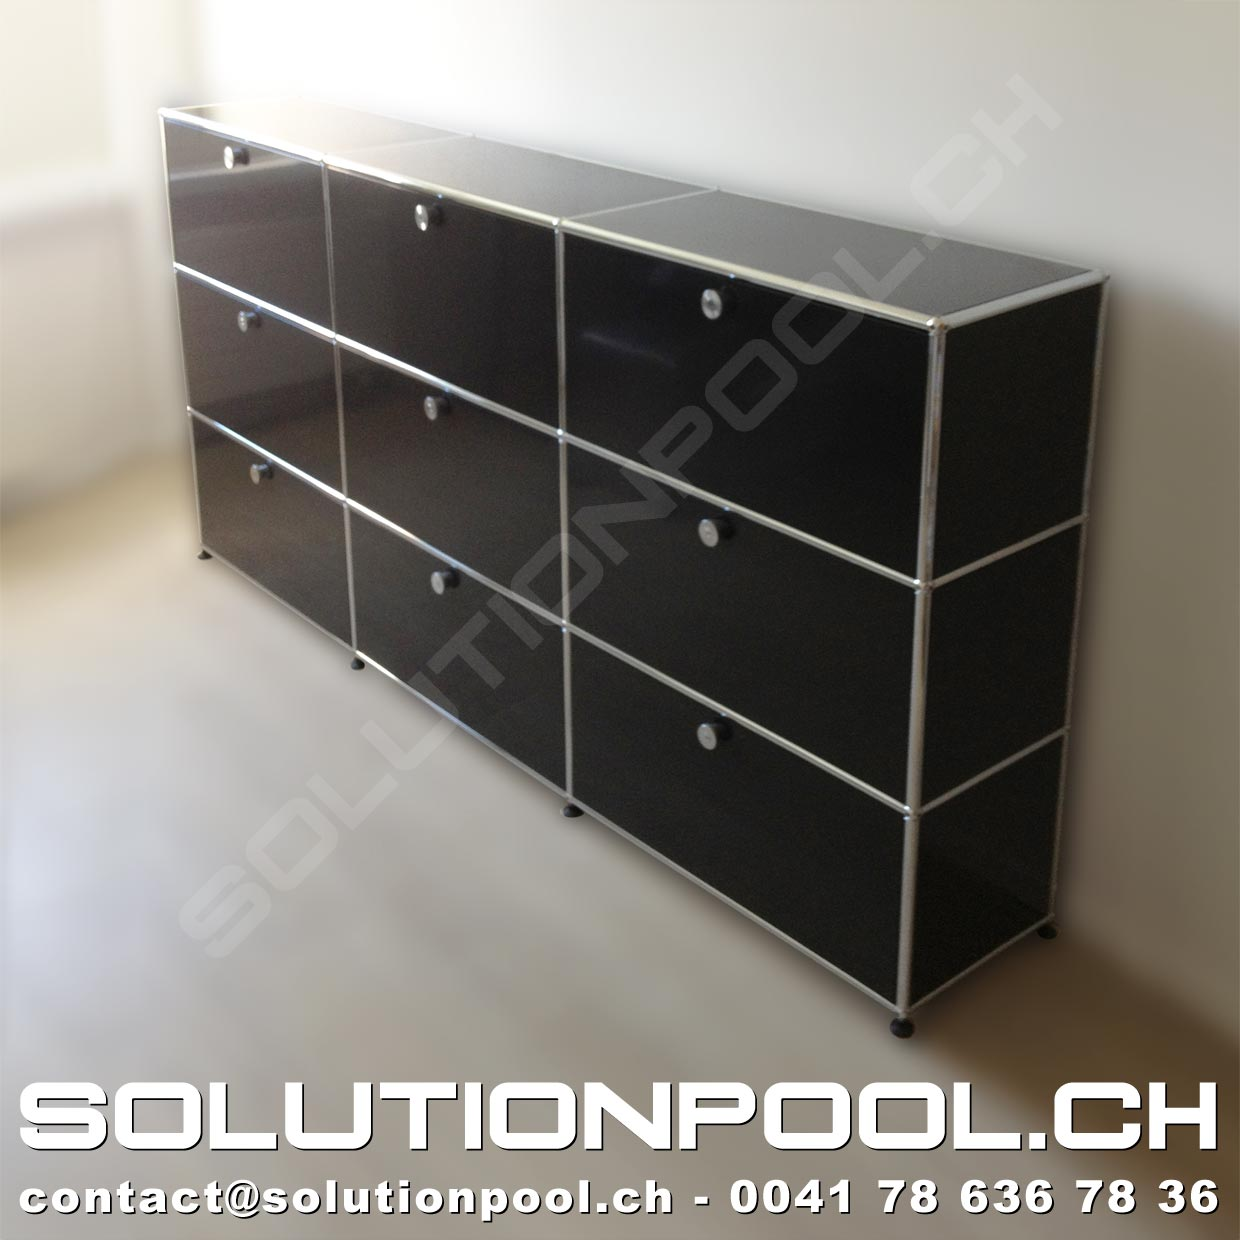 usm highboard schwarz solutionpool first class second hand for home and office. Black Bedroom Furniture Sets. Home Design Ideas